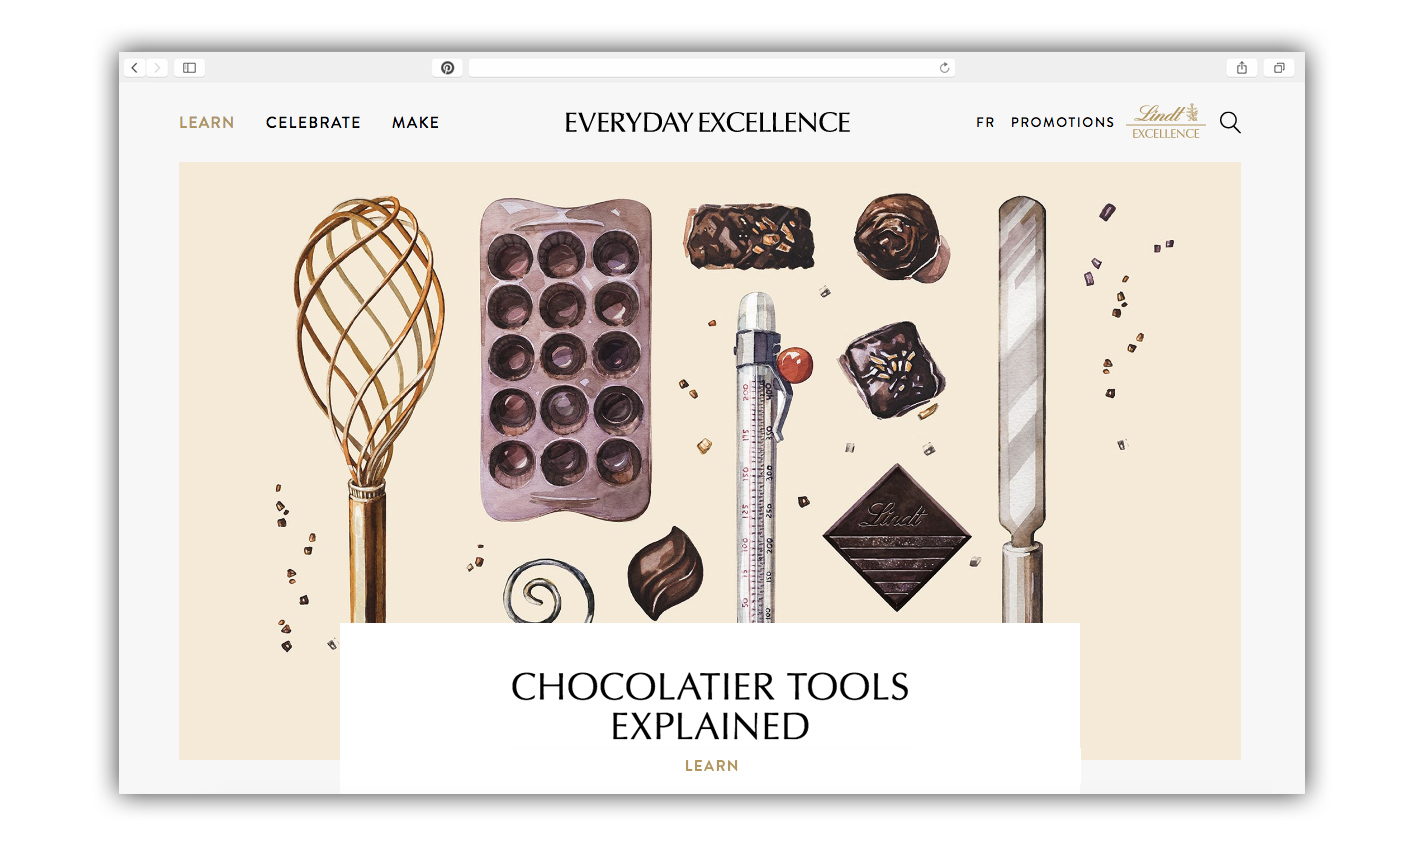 Branded Content program for Lindt Excellence, by Toronto/Montreal based Creative Director / Art Director Guillaume Brière